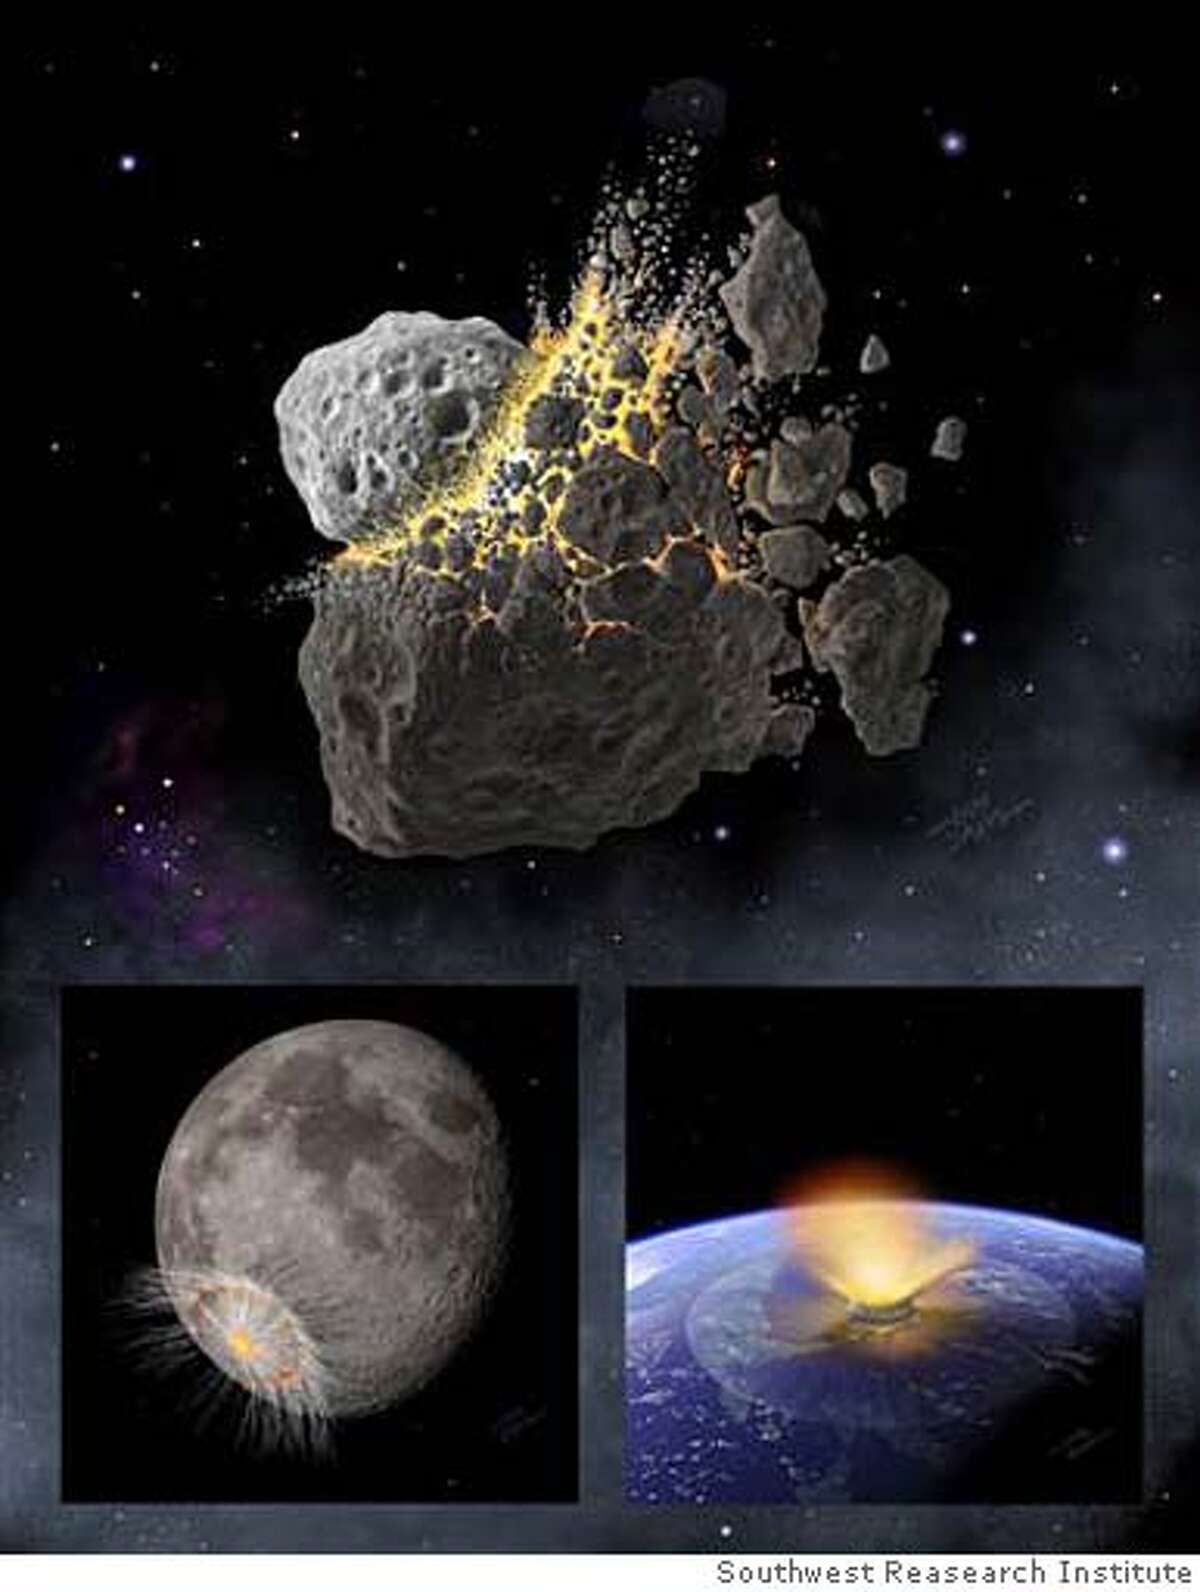 the top picture is supposed to show the collision 160 million years ago �one asteroid crashes into the bigger one; the one with the brightflash below is the big remaining asteroid fragment blasting a crater in the earth is a huge explosive flash like a nuke bomb. The darker imageis the other asteroid fragment blasting the moon to form the well know crater Tycho which Apollo astroauts examined and dated (estimate) but didn't have the tools to analyze. COURTESY OF SWRI/DON DAVIS Ran on: 09-06-2007 A new theory says that a collision between the large asteroid Baptistina and a smaller one (top) created huge fragments that bombarded Earth and the moon, creating the lunar crater Tycho (above), and the dinosaur-killer on Earth. Ran on: 09-06-2007 A new theory says that a collision between the large asteroid Baptistina and a smaller one (top) created huge fragments that bombarded Earth and the moon, creating the lunar crater Tycho (above), and the dinosaur-killer on Earth.